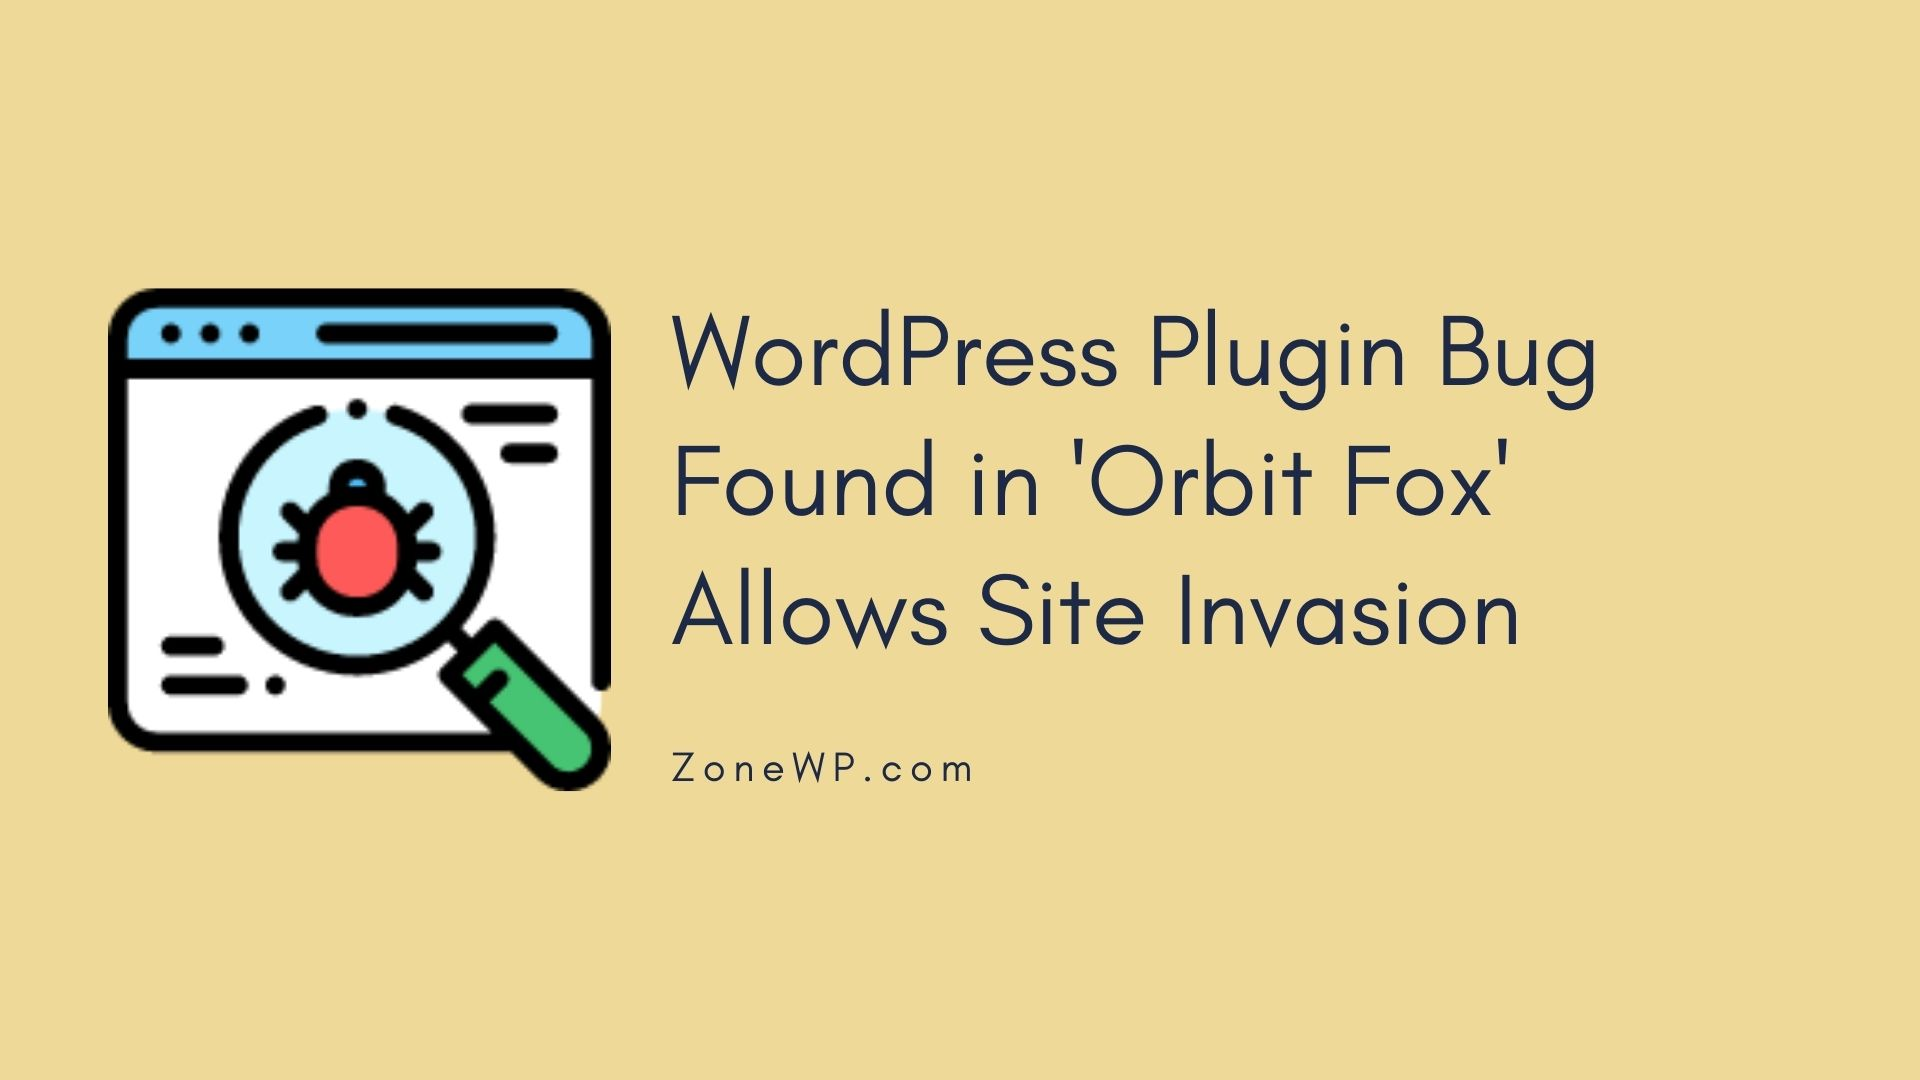 WordPress Plugin Bug Found in 'Orbit Fox' Allows Site Invasion